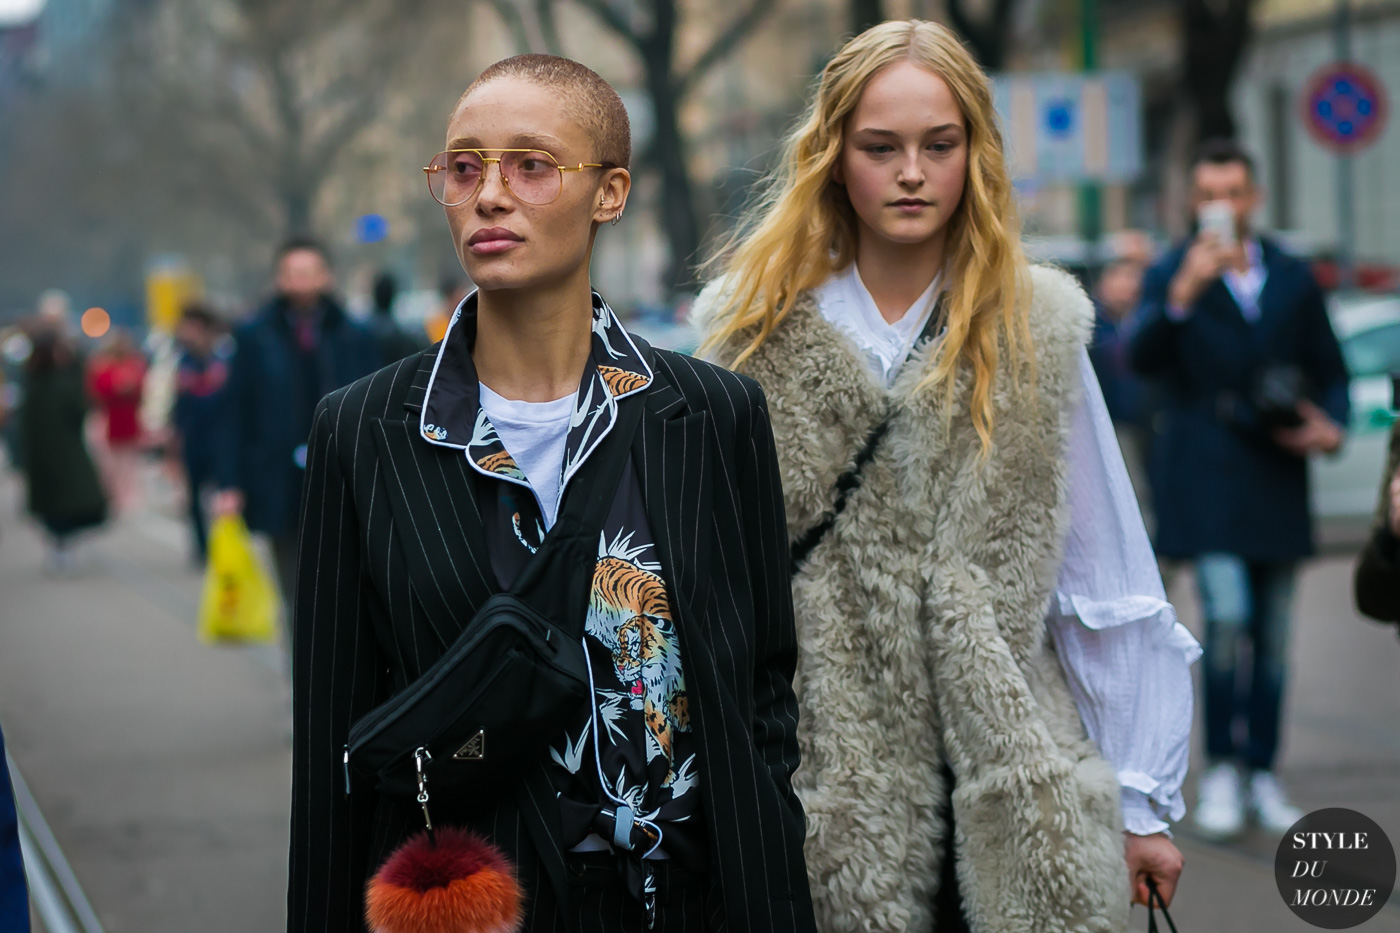 Adwoa Aboah and Jean Campbell by STYLEDUMONDE Street Style Fashion Photography0E2A6247